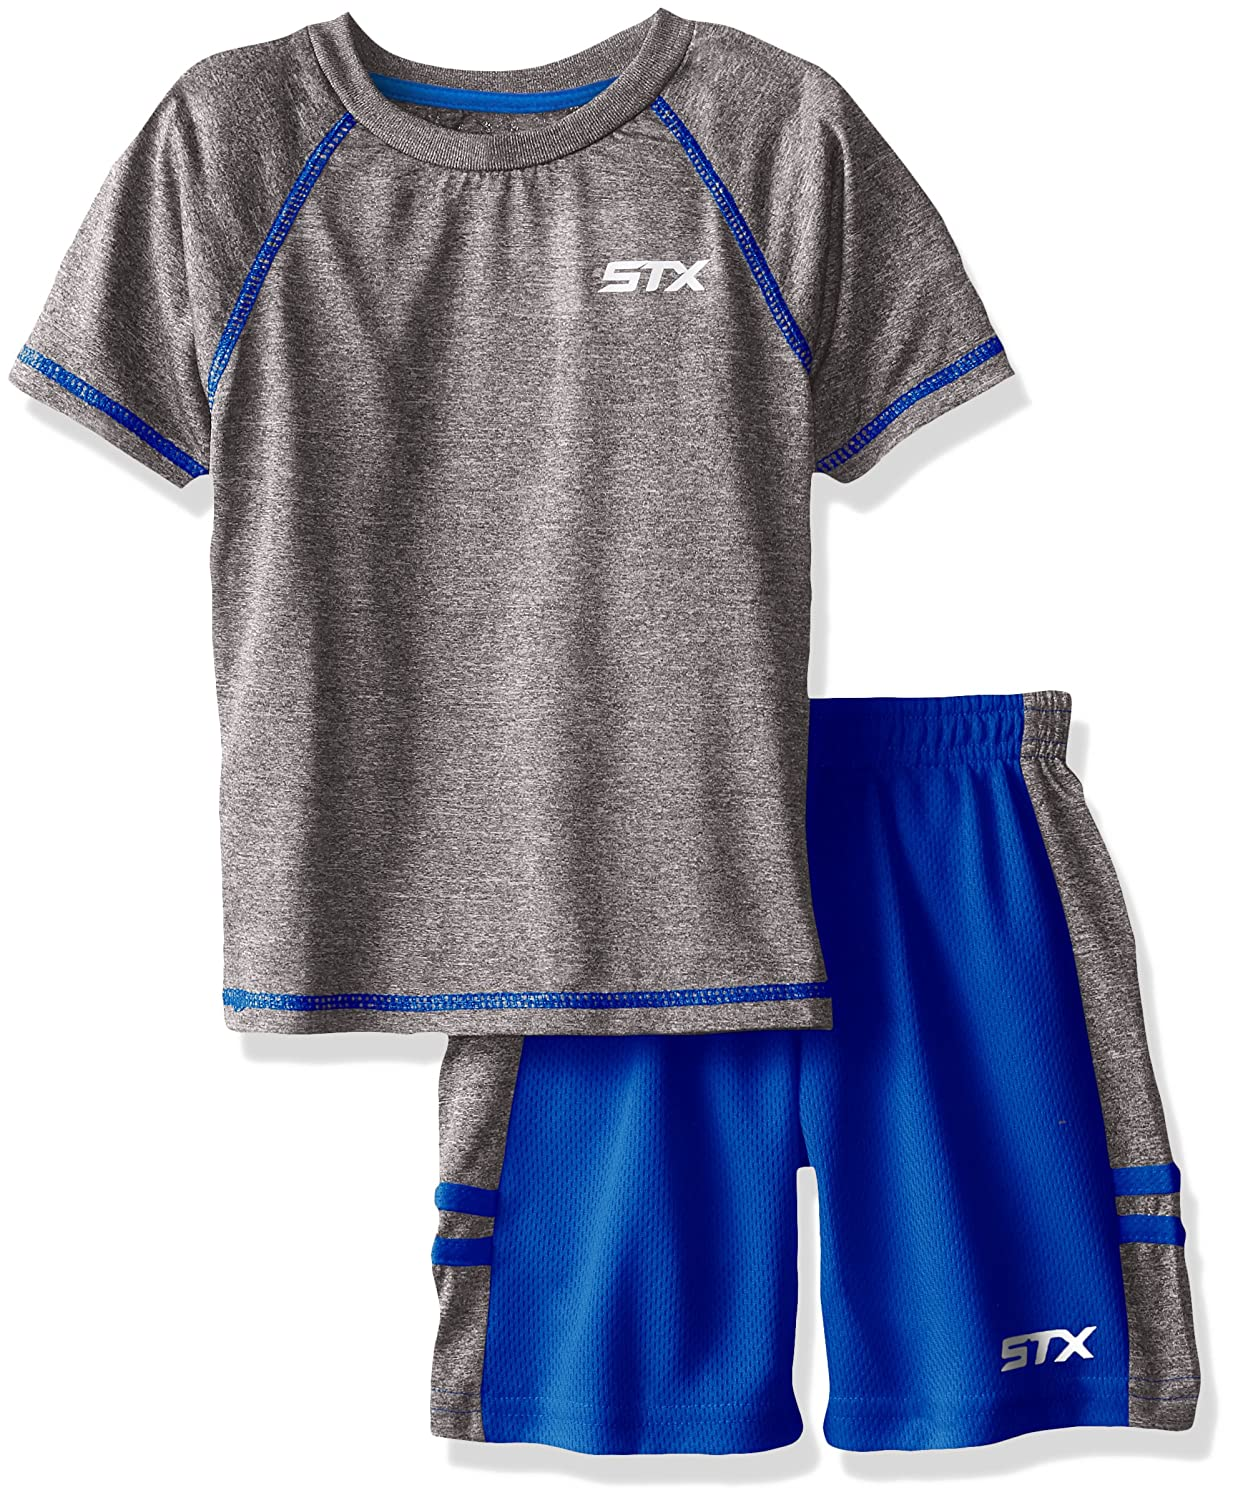 f3c7488da393 Top6: STX Little and Big Boys' 2 Piece Performance Athletic T-Shirt and  Short Set